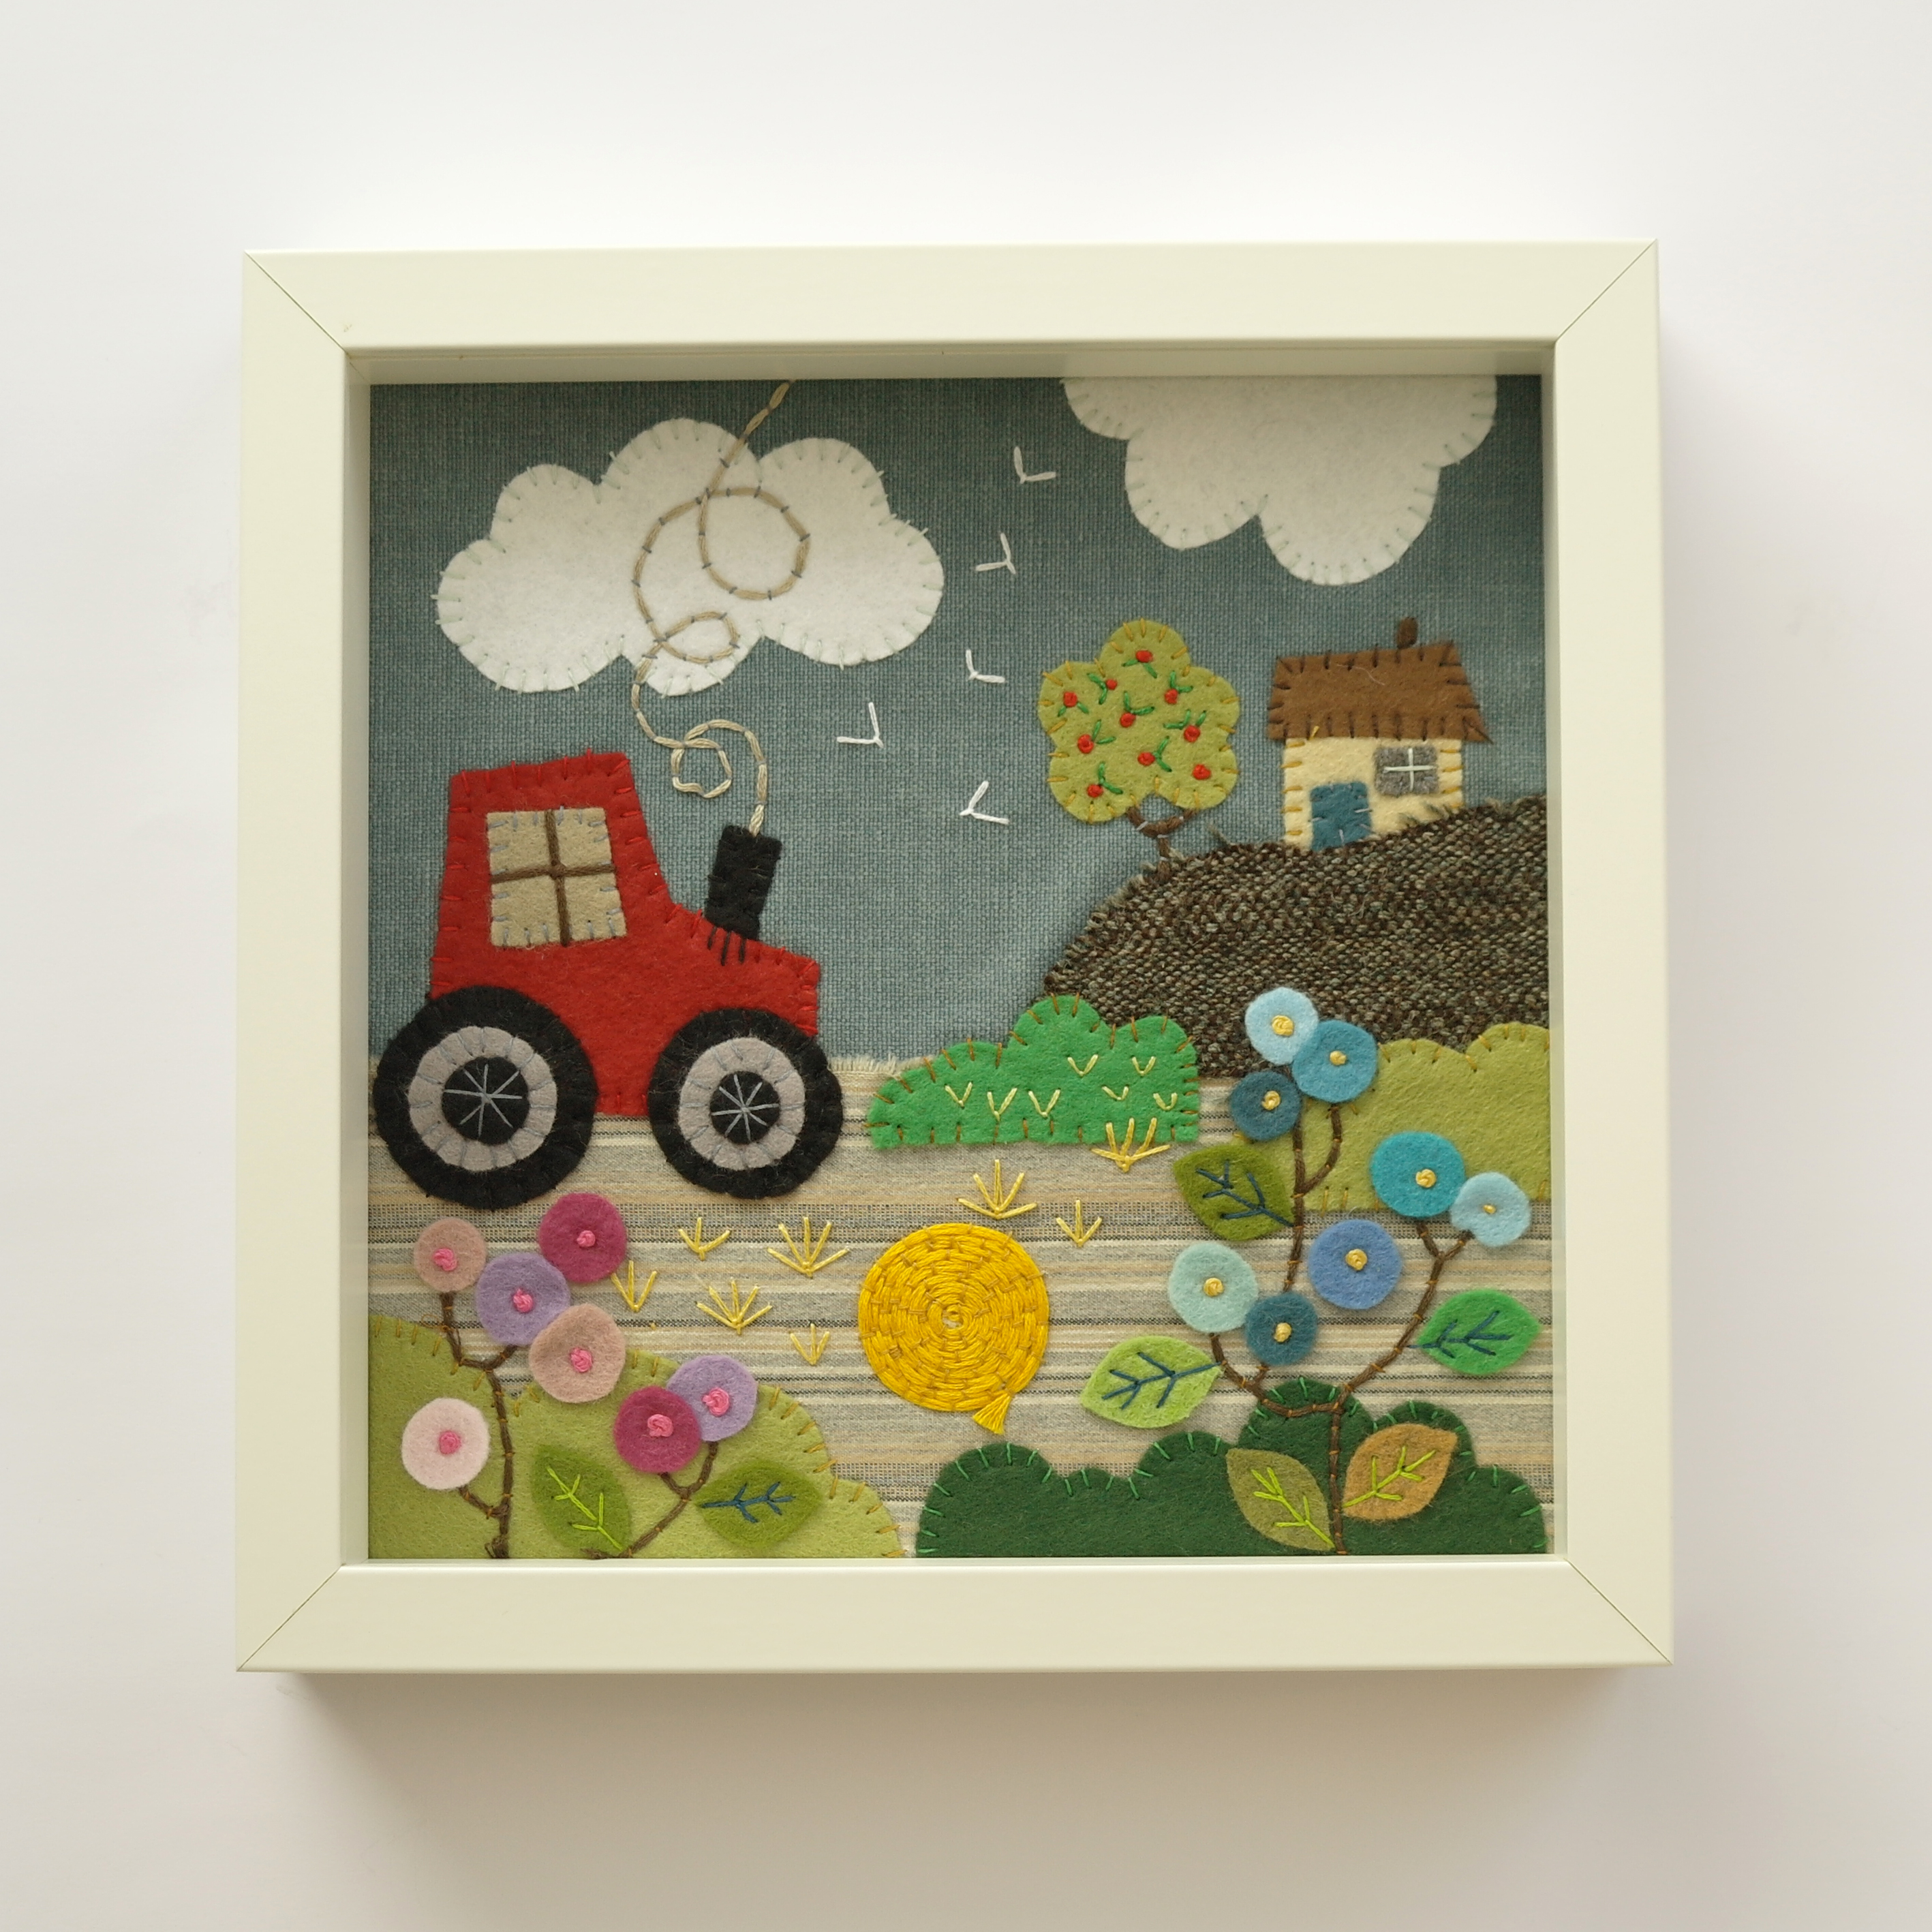 Stitched Tractor Scene Appliqué Collage (Framed)